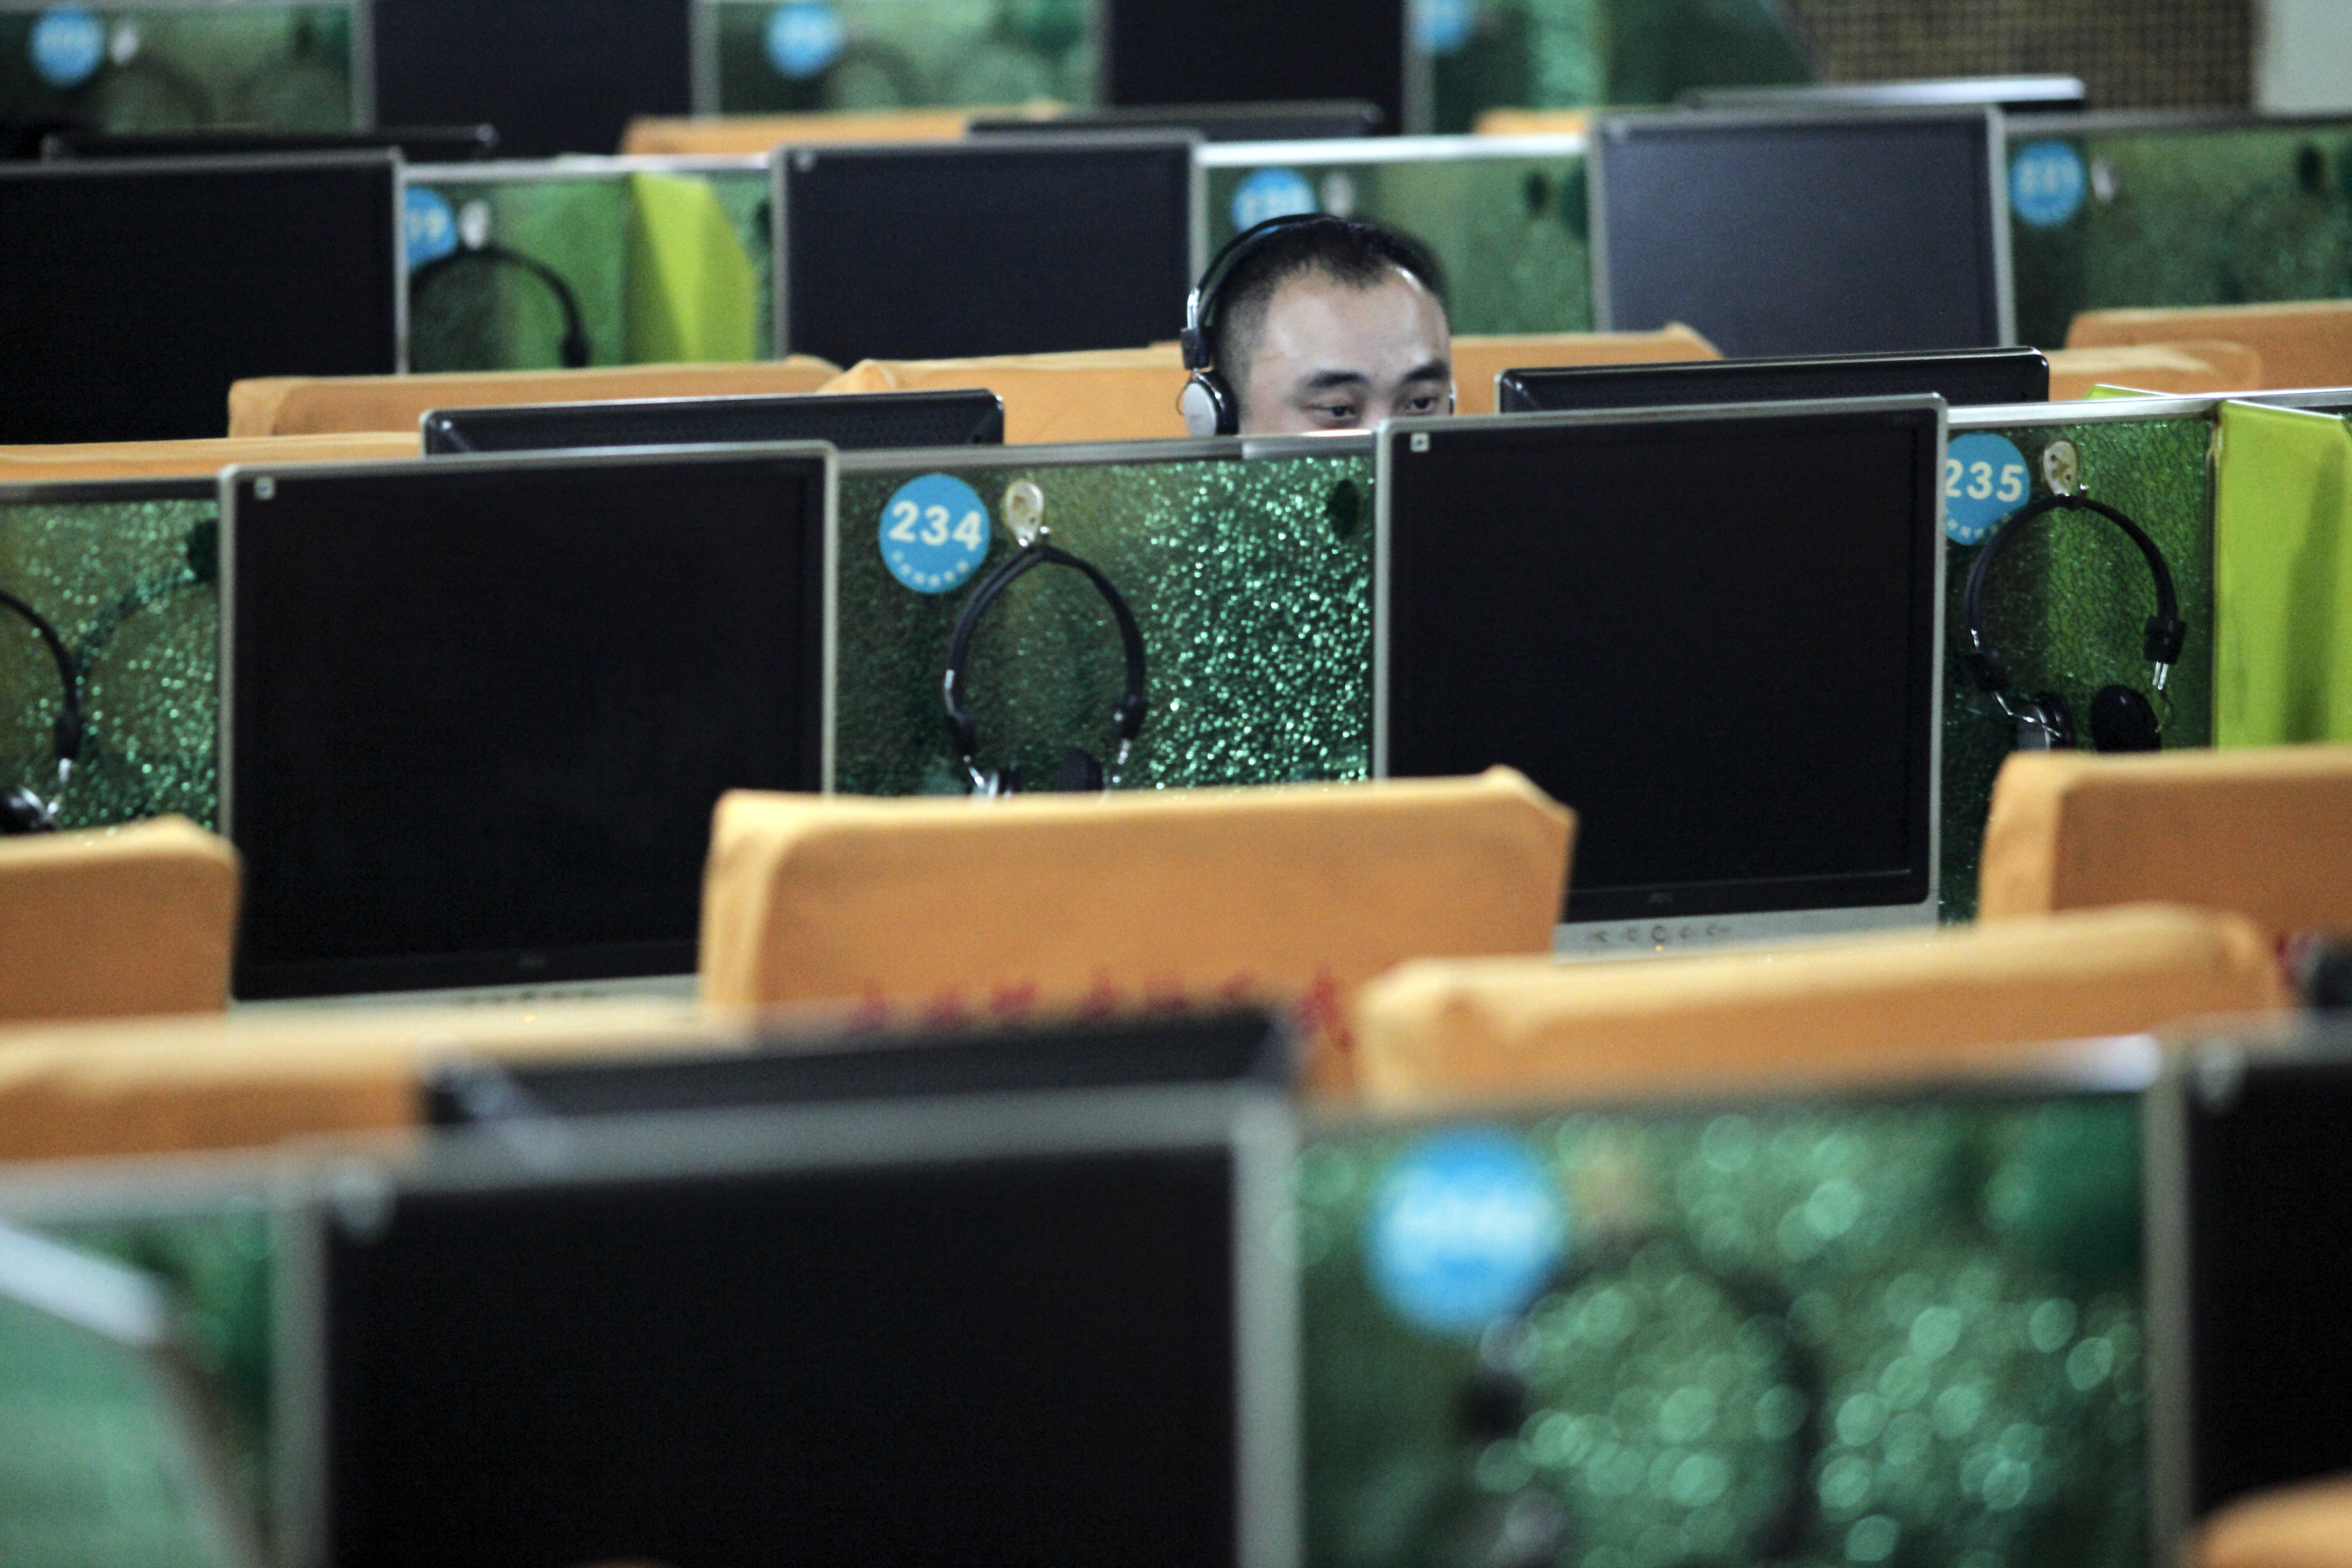 China - Technology - Customers use computers at an internet cafe in Shanghai